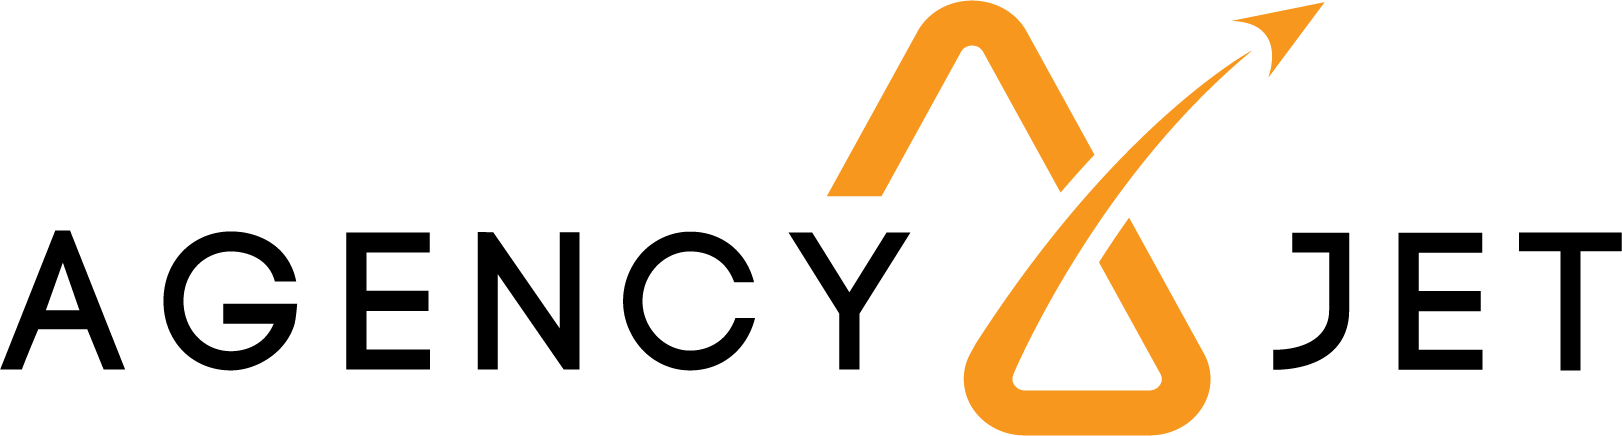 Primary Logo - Transparent